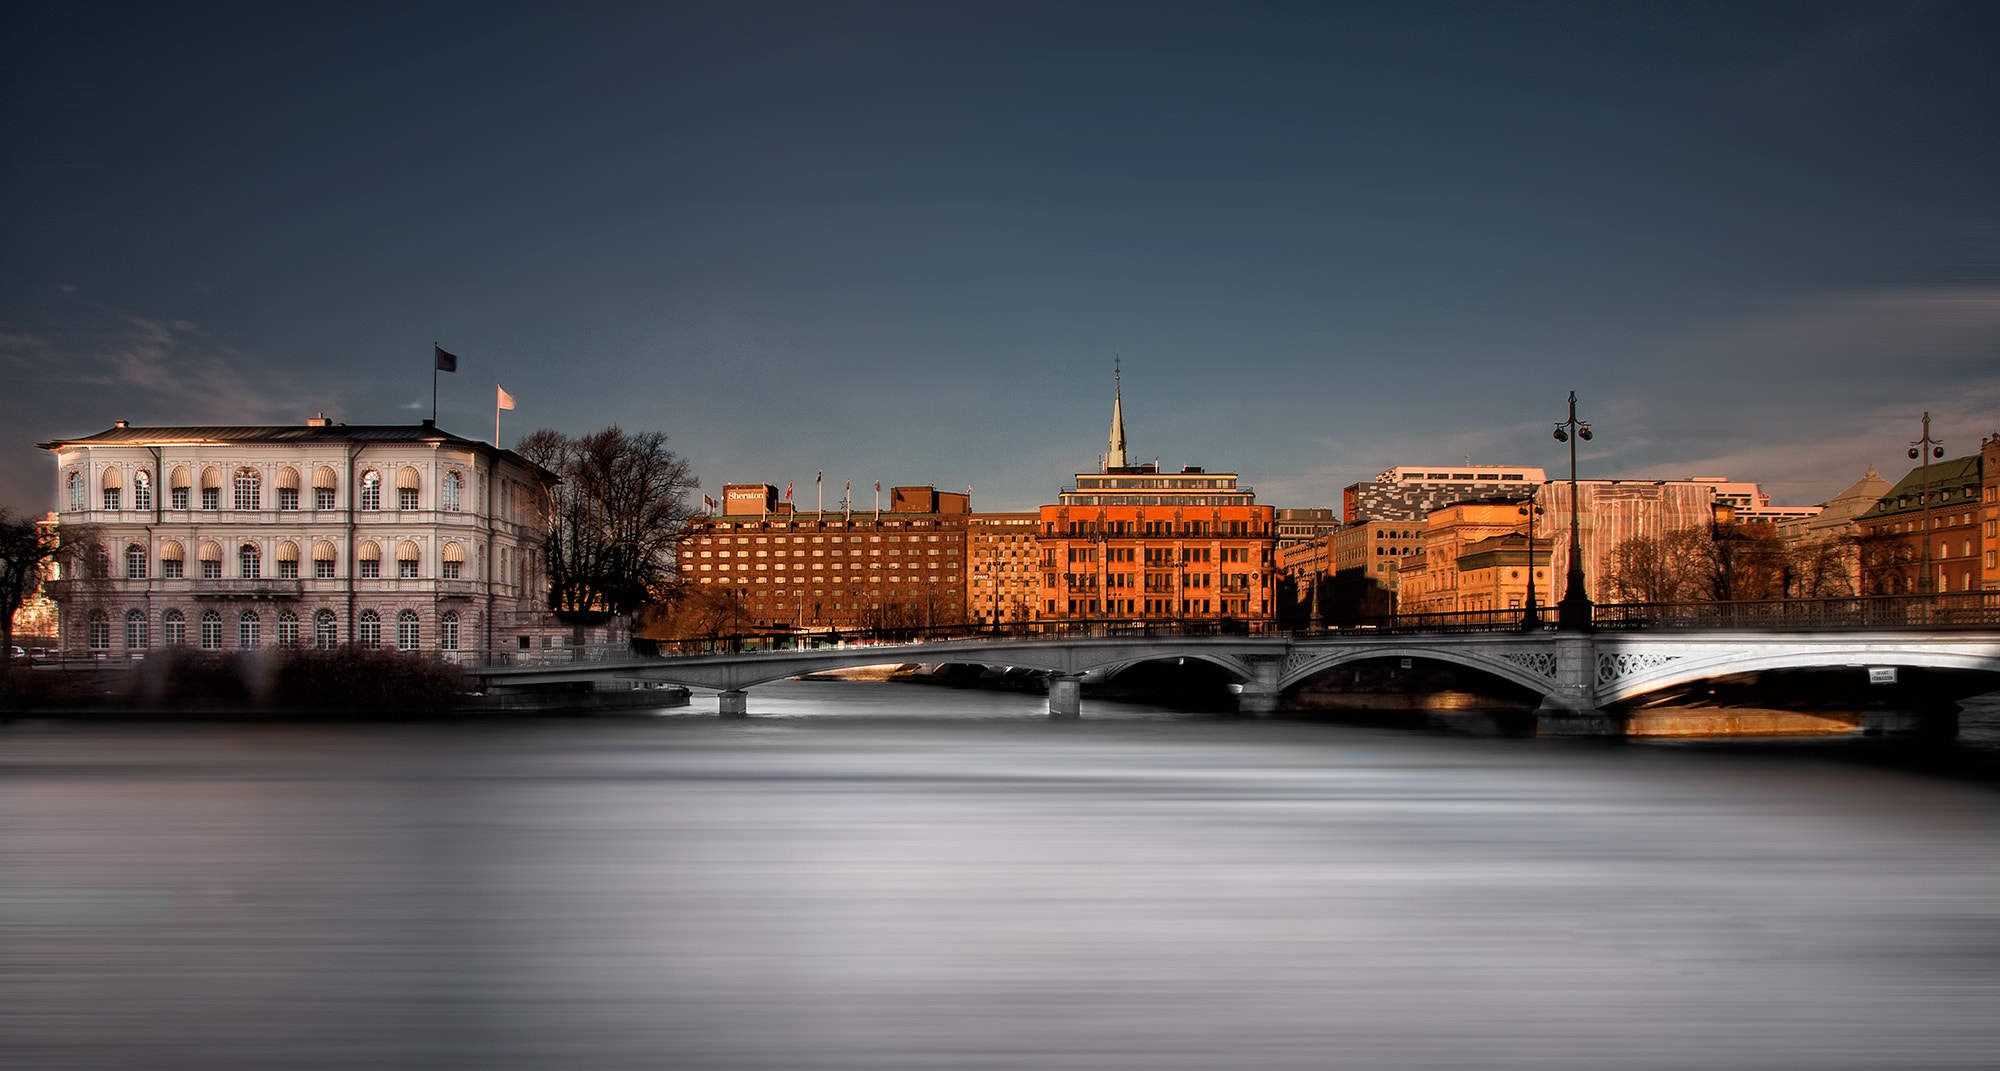 Photograph Stockholm Sweden January 2013 by Mikael Sundberg on 500px